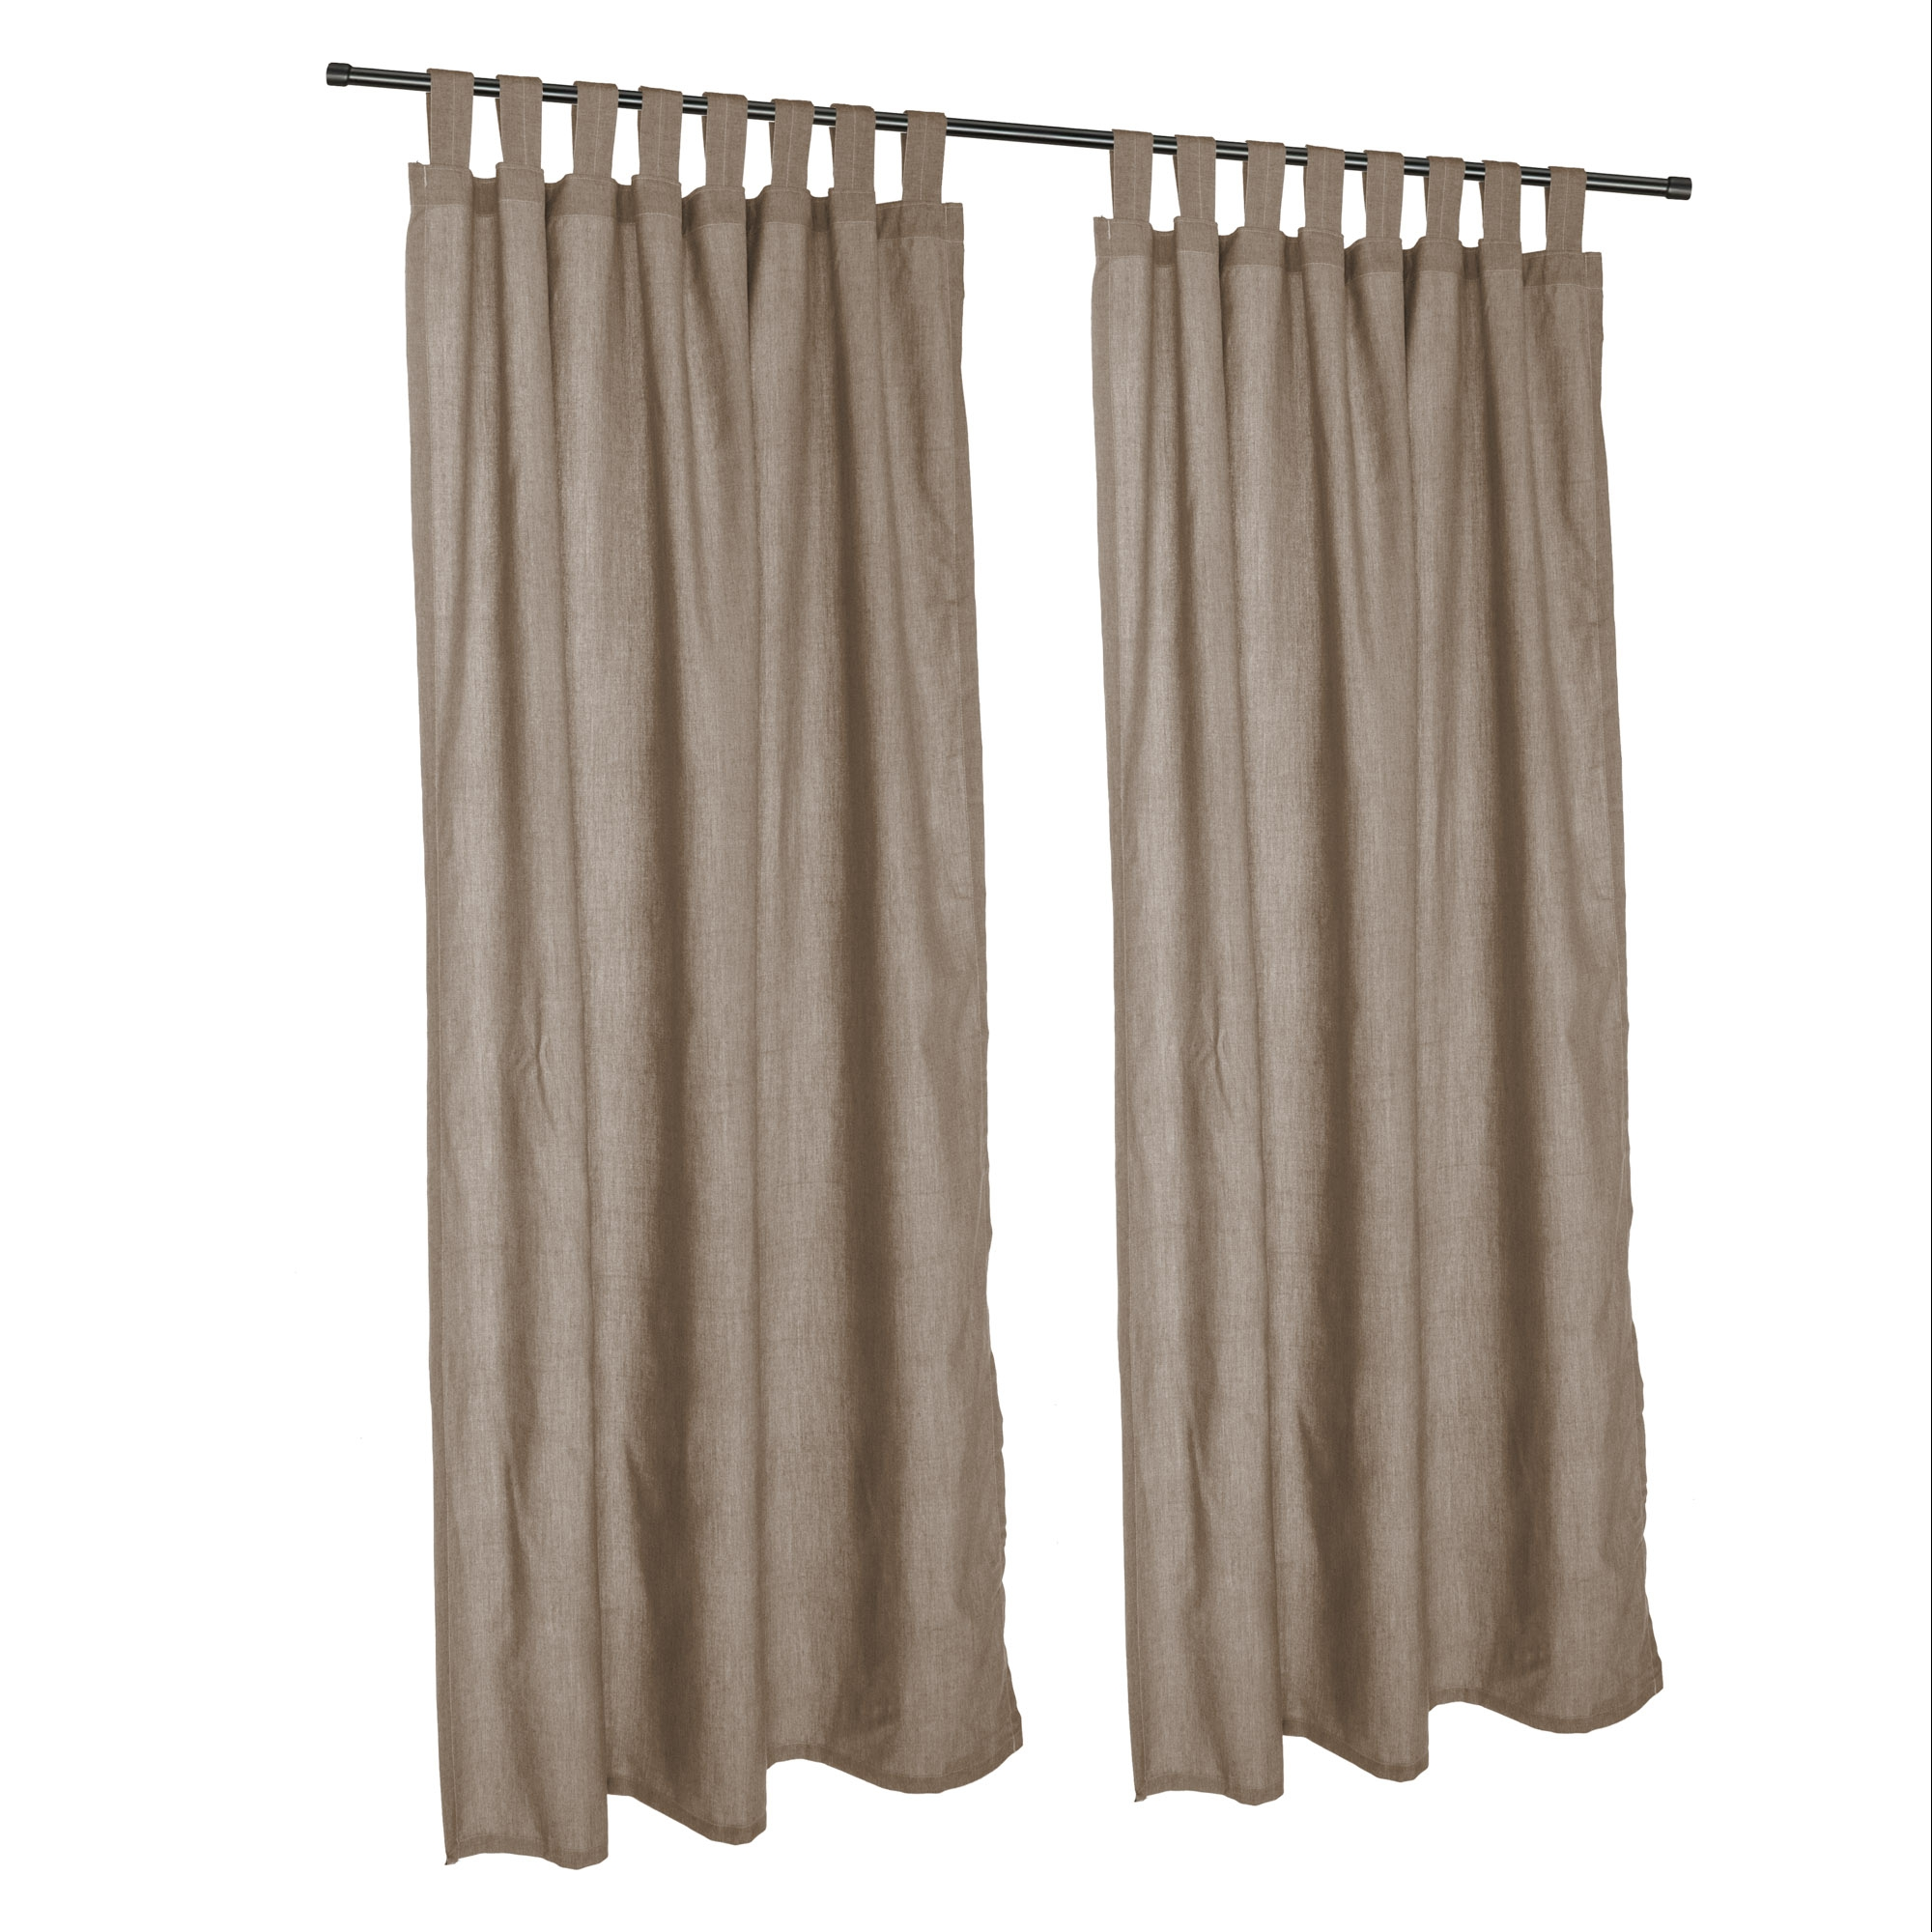 outdoor curtains sunbrella photo - 10